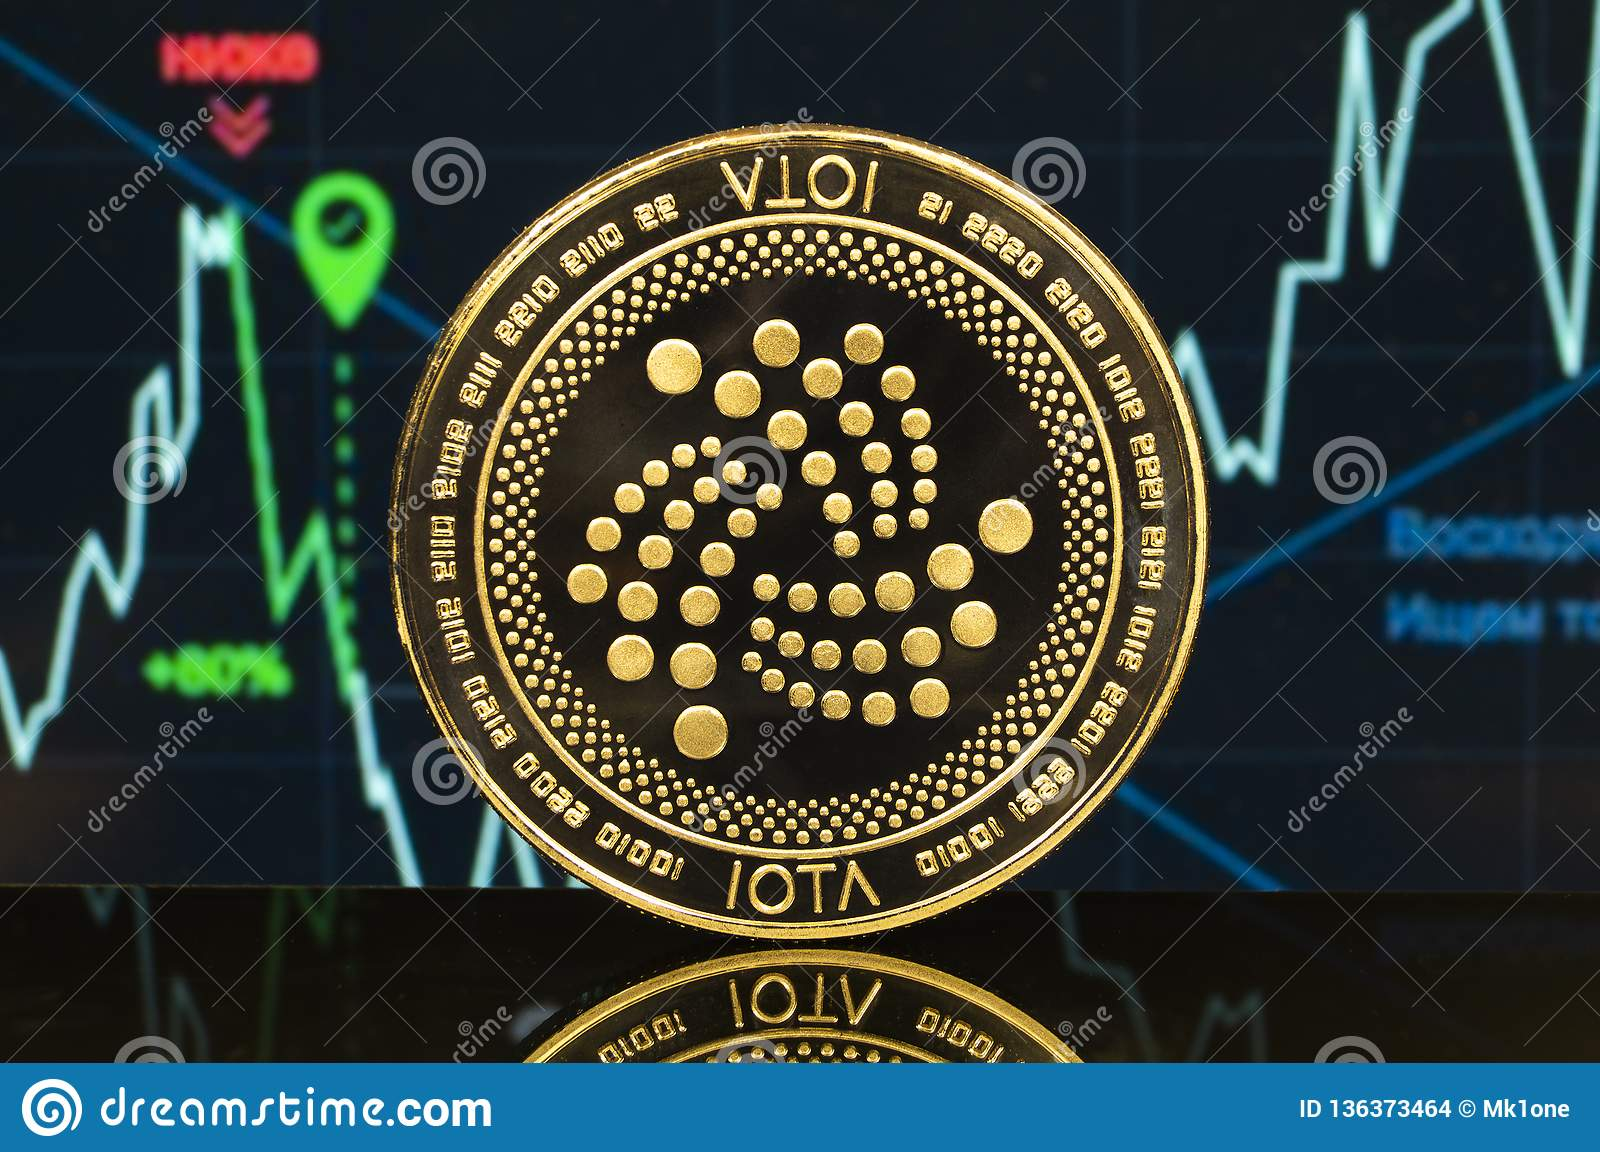 Iota is a modern way of exchange and this crypto currency